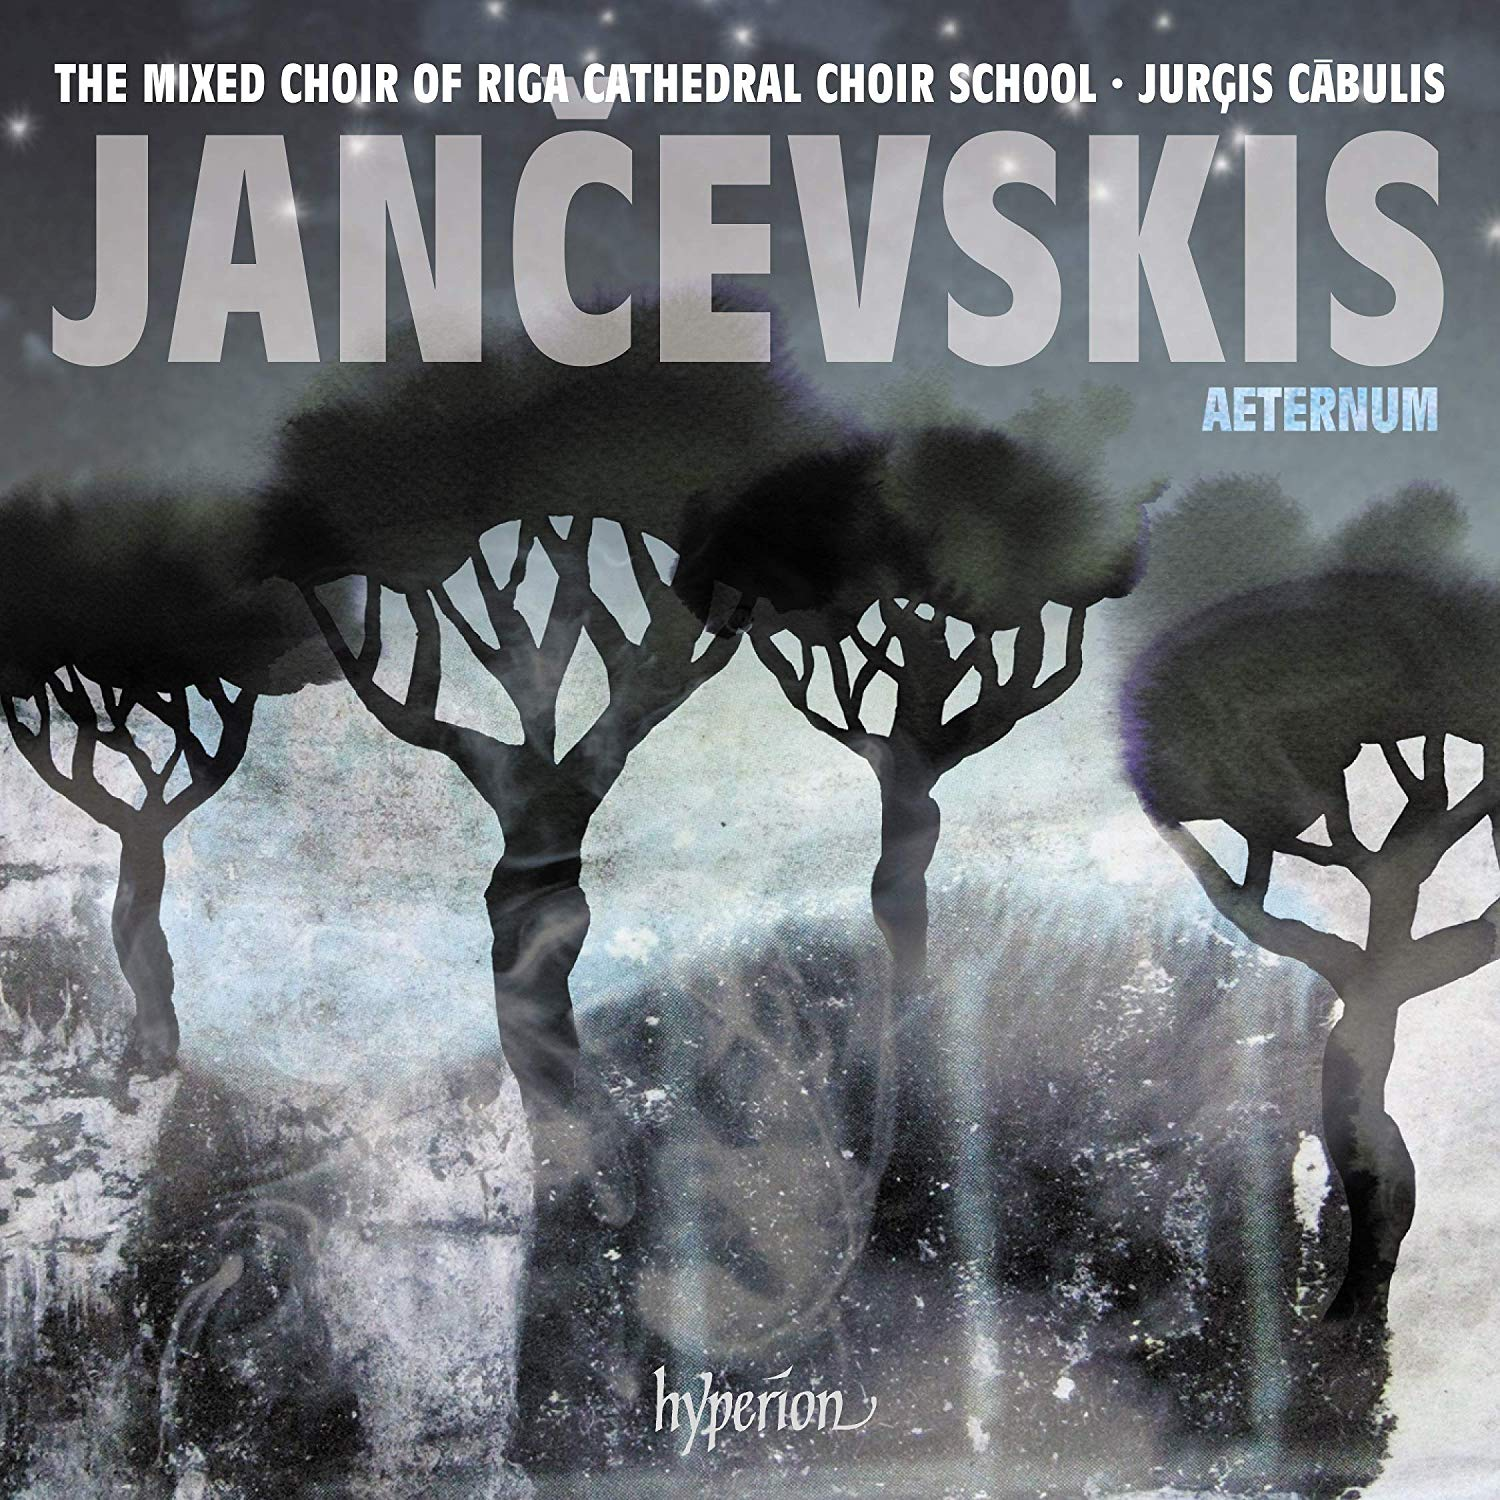 Review of JANČEVSKIS Aeternum and other choral works